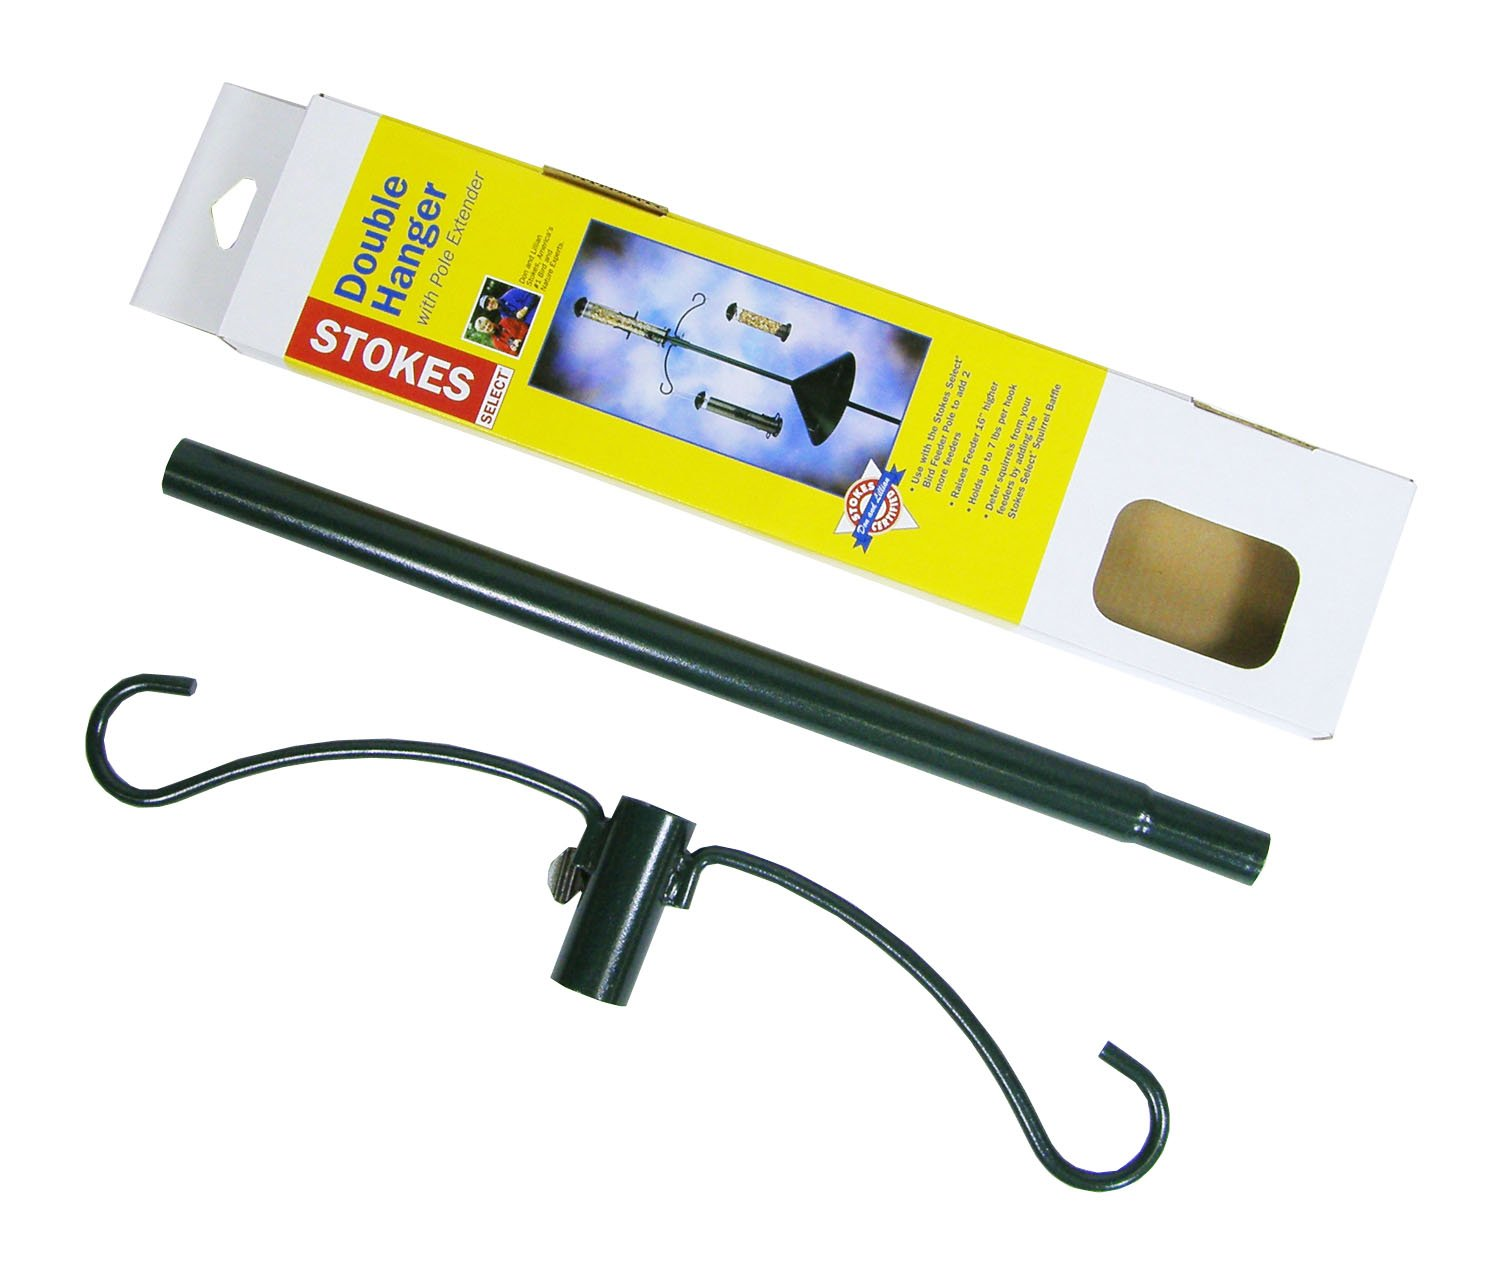 Amazon.com : Stokes Select Metal Double Hanger with 16-Inch Pole ...